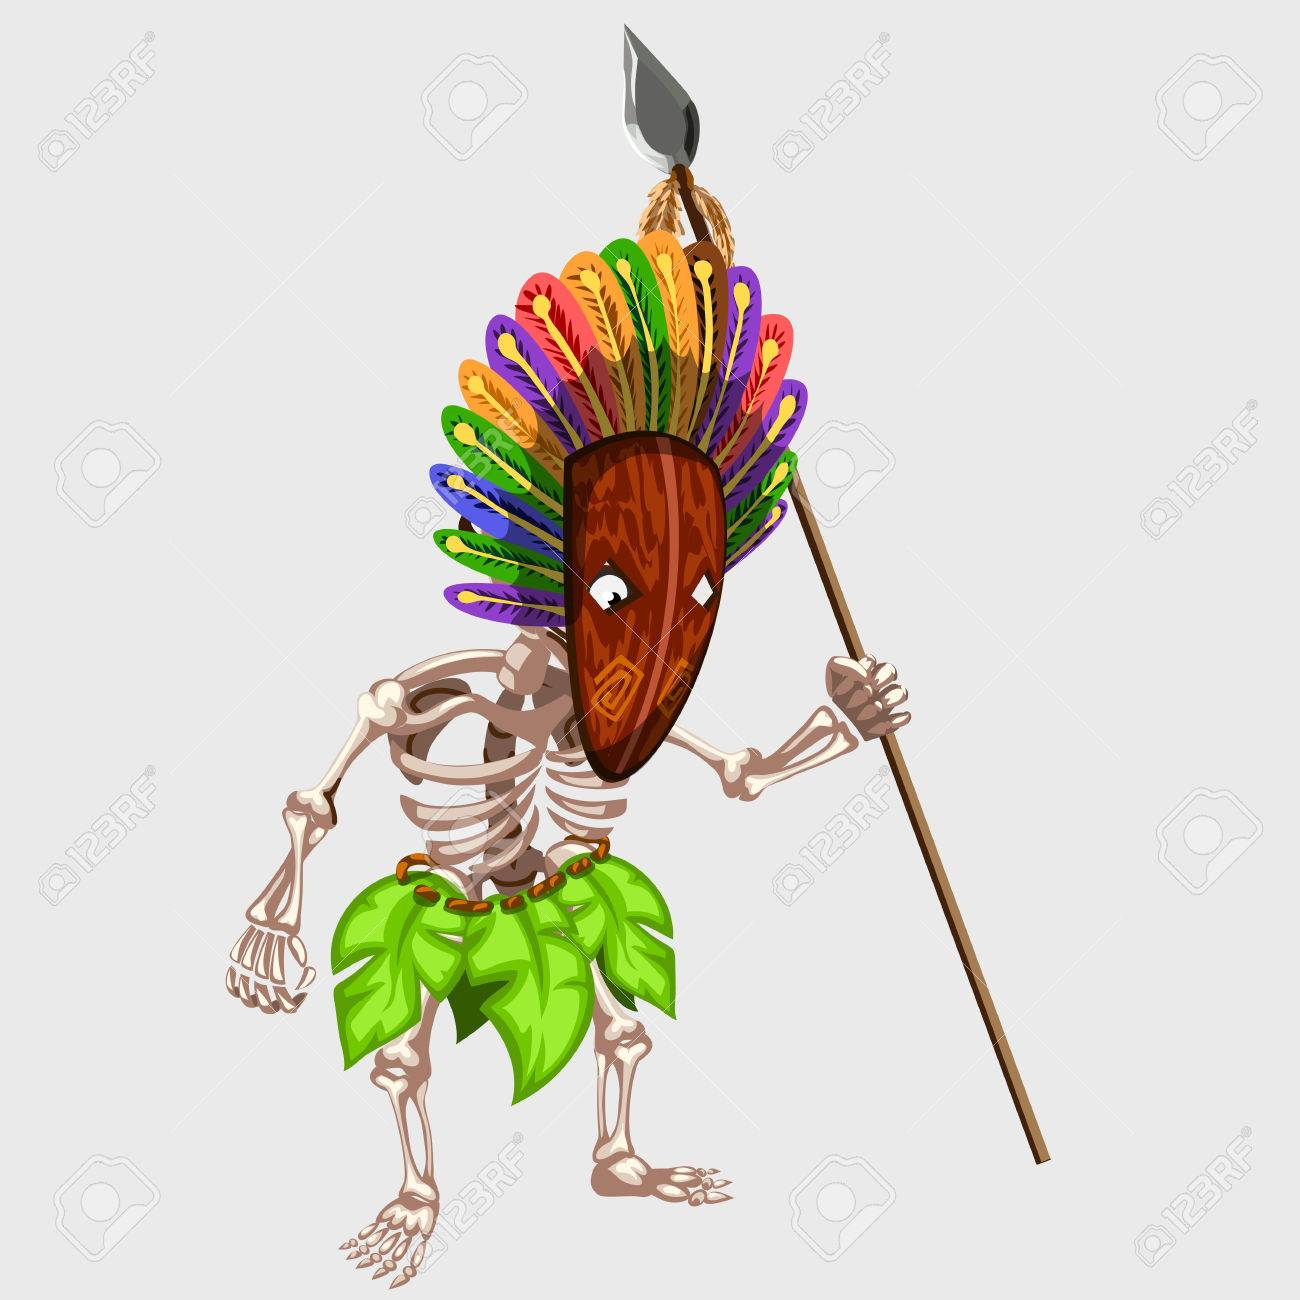 1300x1300 Skeleton In Indian Mask With Spear, Image For Gaming Interface